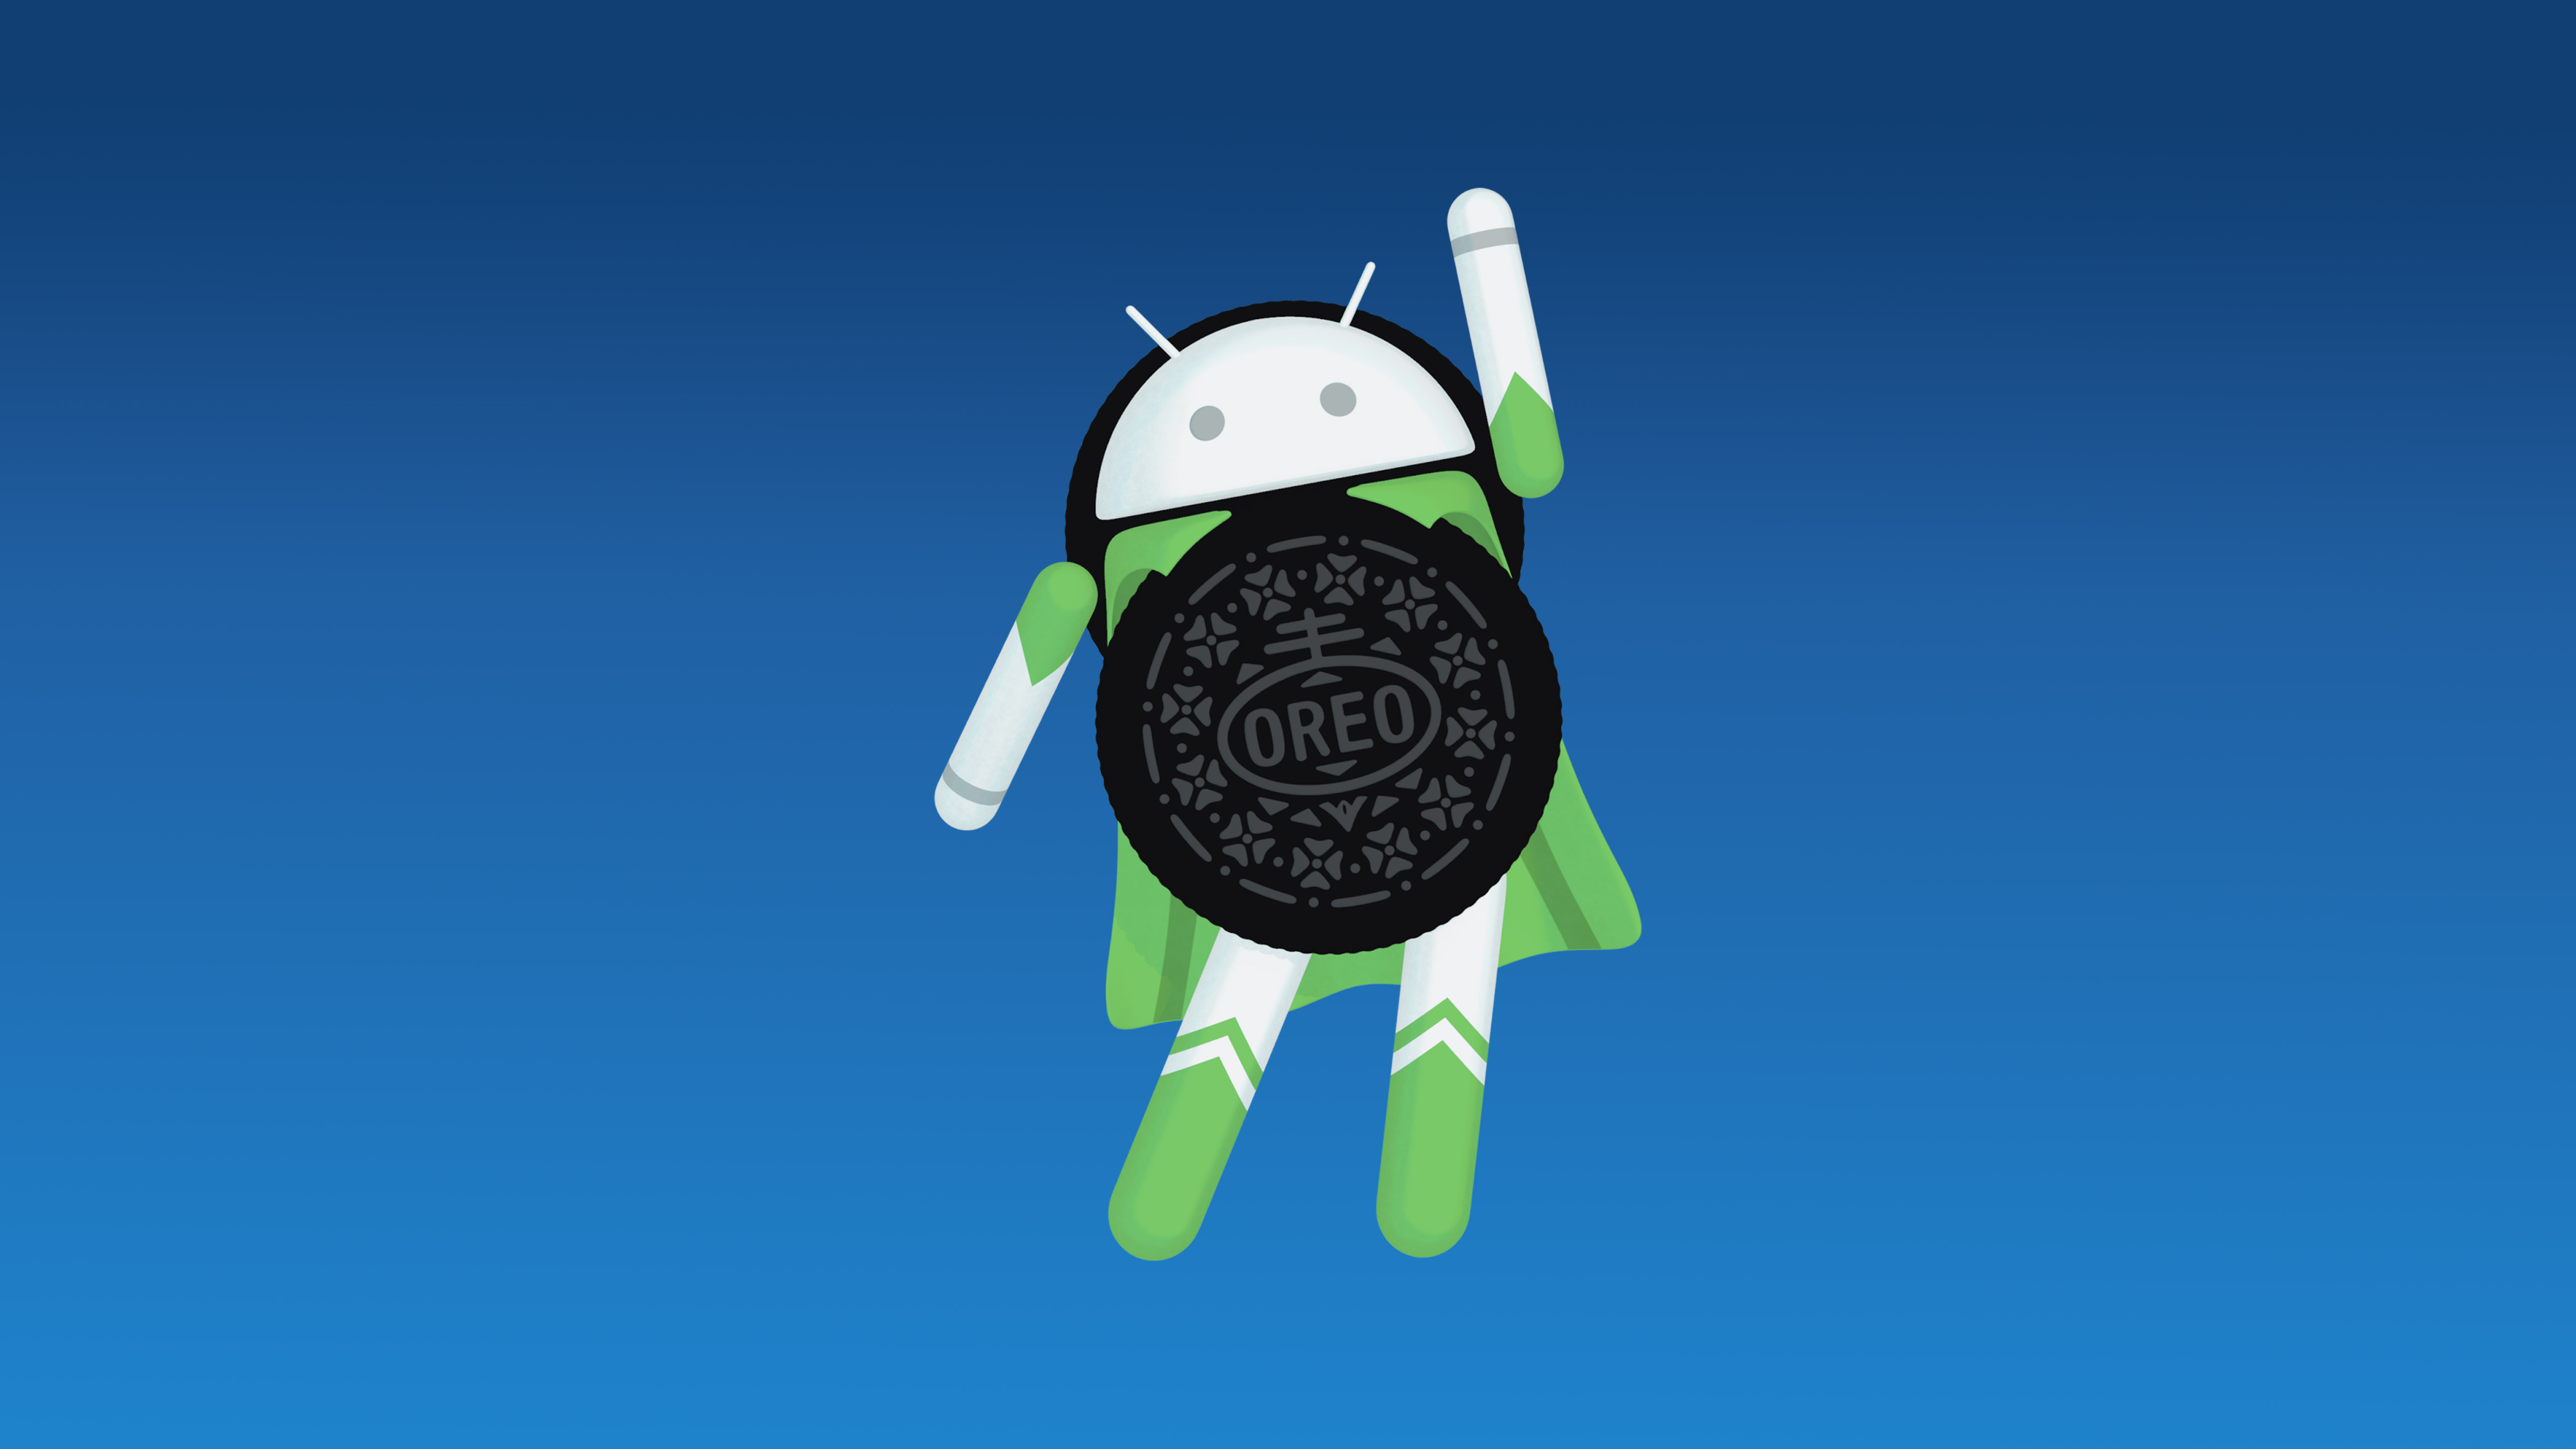 Android Oreo Stock 5K983887137 - Android Oreo Stock 5K - Stock, Oreo, One, Android